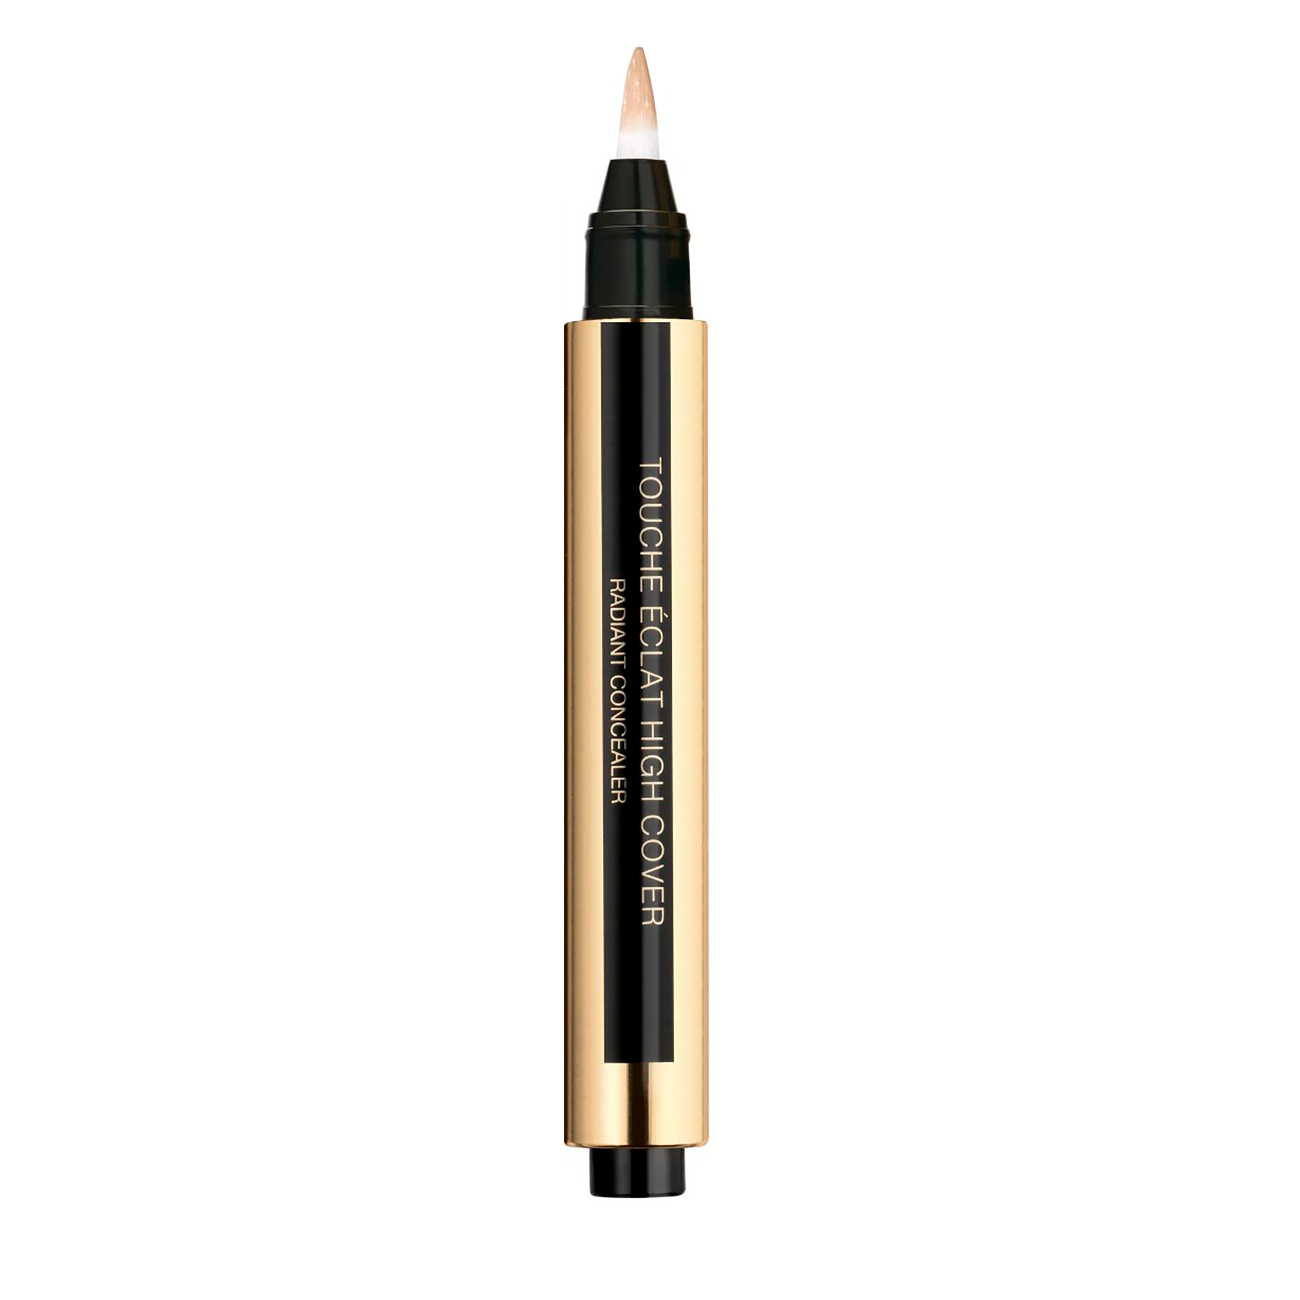 Touche Eclat 2 2.5gr Yves Saint Laurent imagine 2021 bestvalue.eu